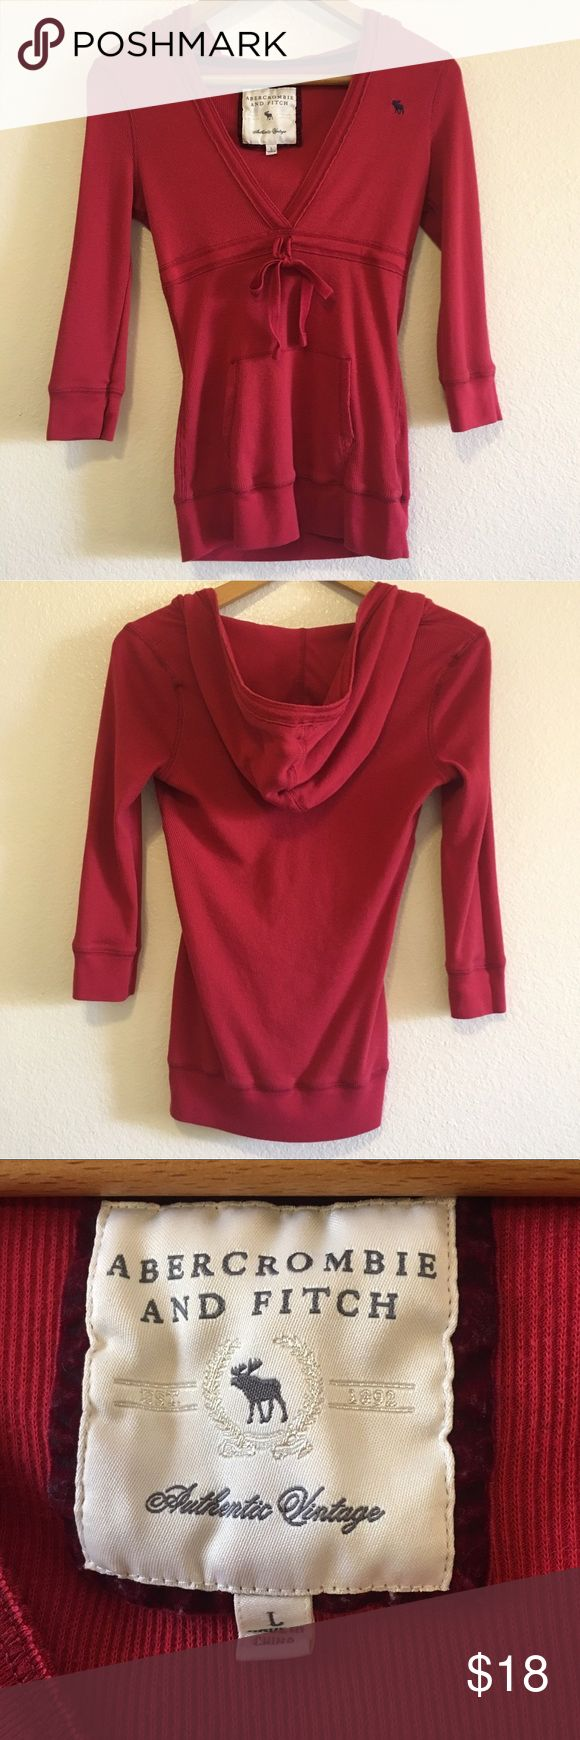 Abercrombie Fitch Authentic Vintage Red Hoodie Red Hoodie Abercrombie And Fitch Tops Clothes Design